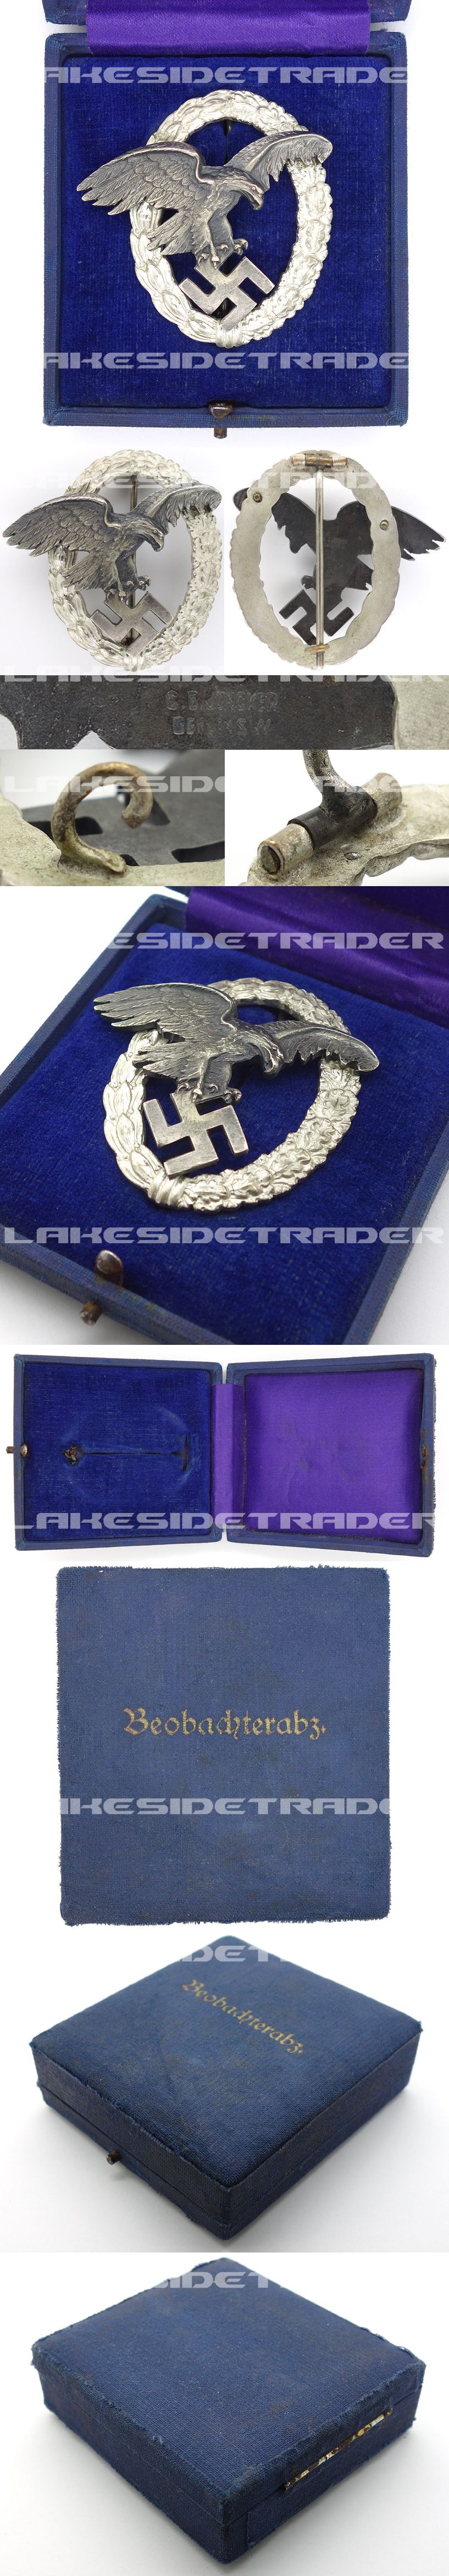 Cased Early J1 Luftwaffe Observer Badge by C.E. Juncker